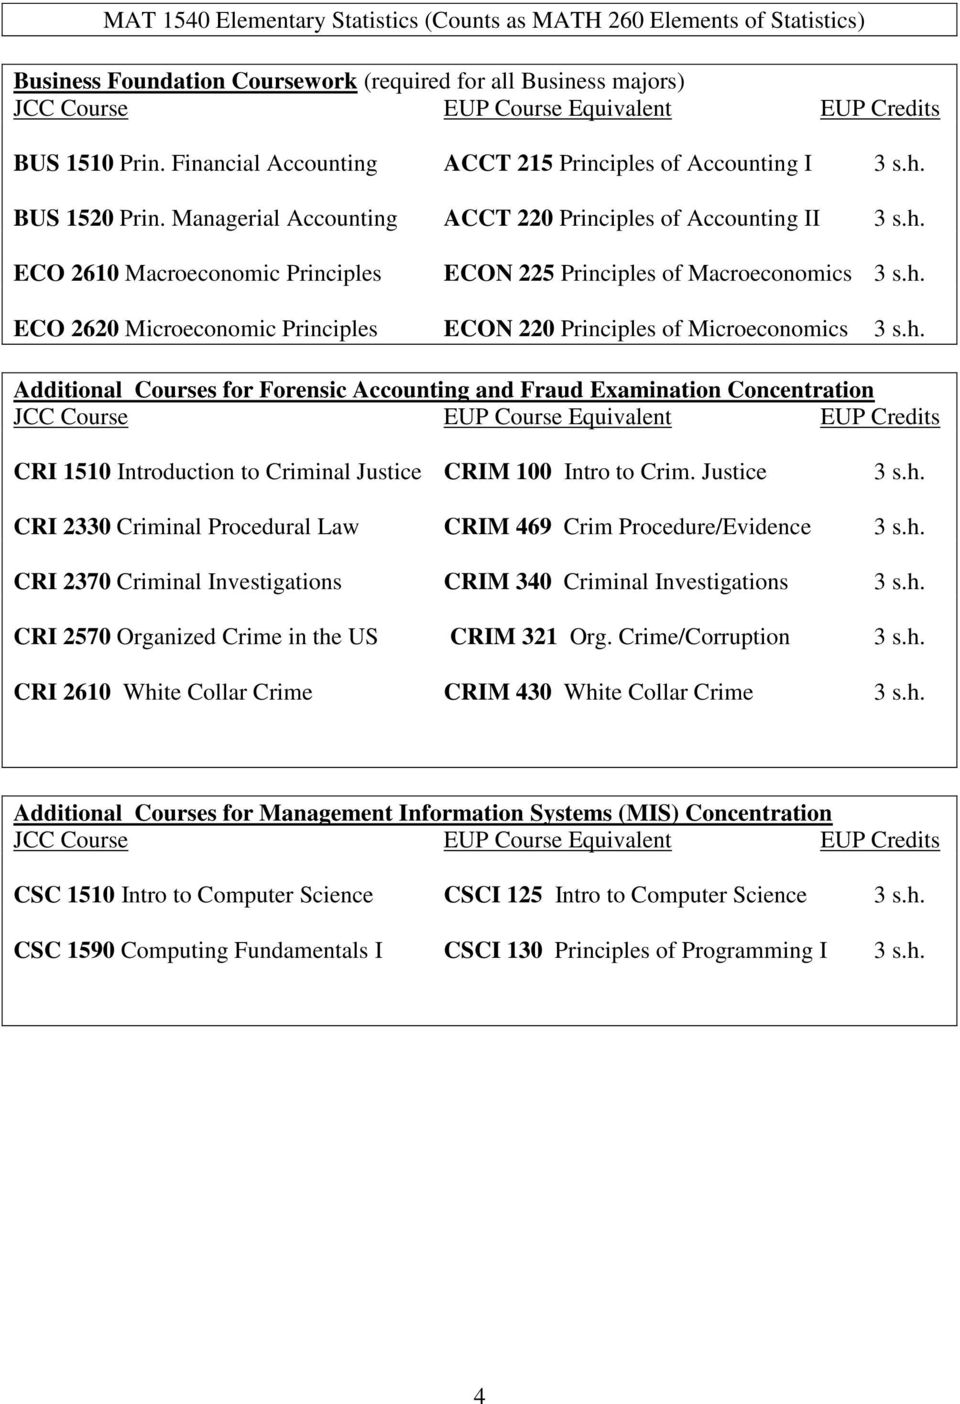 h. ECO 2620 Microeconomic Principles ECON 220 Principles of Microeconomics 3 s.h. Additional Courses for Forensic Accounting and Fraud Examination Concentration CRI 1510 Introduction to Criminal Justice CRIM 100 Intro to Crim.